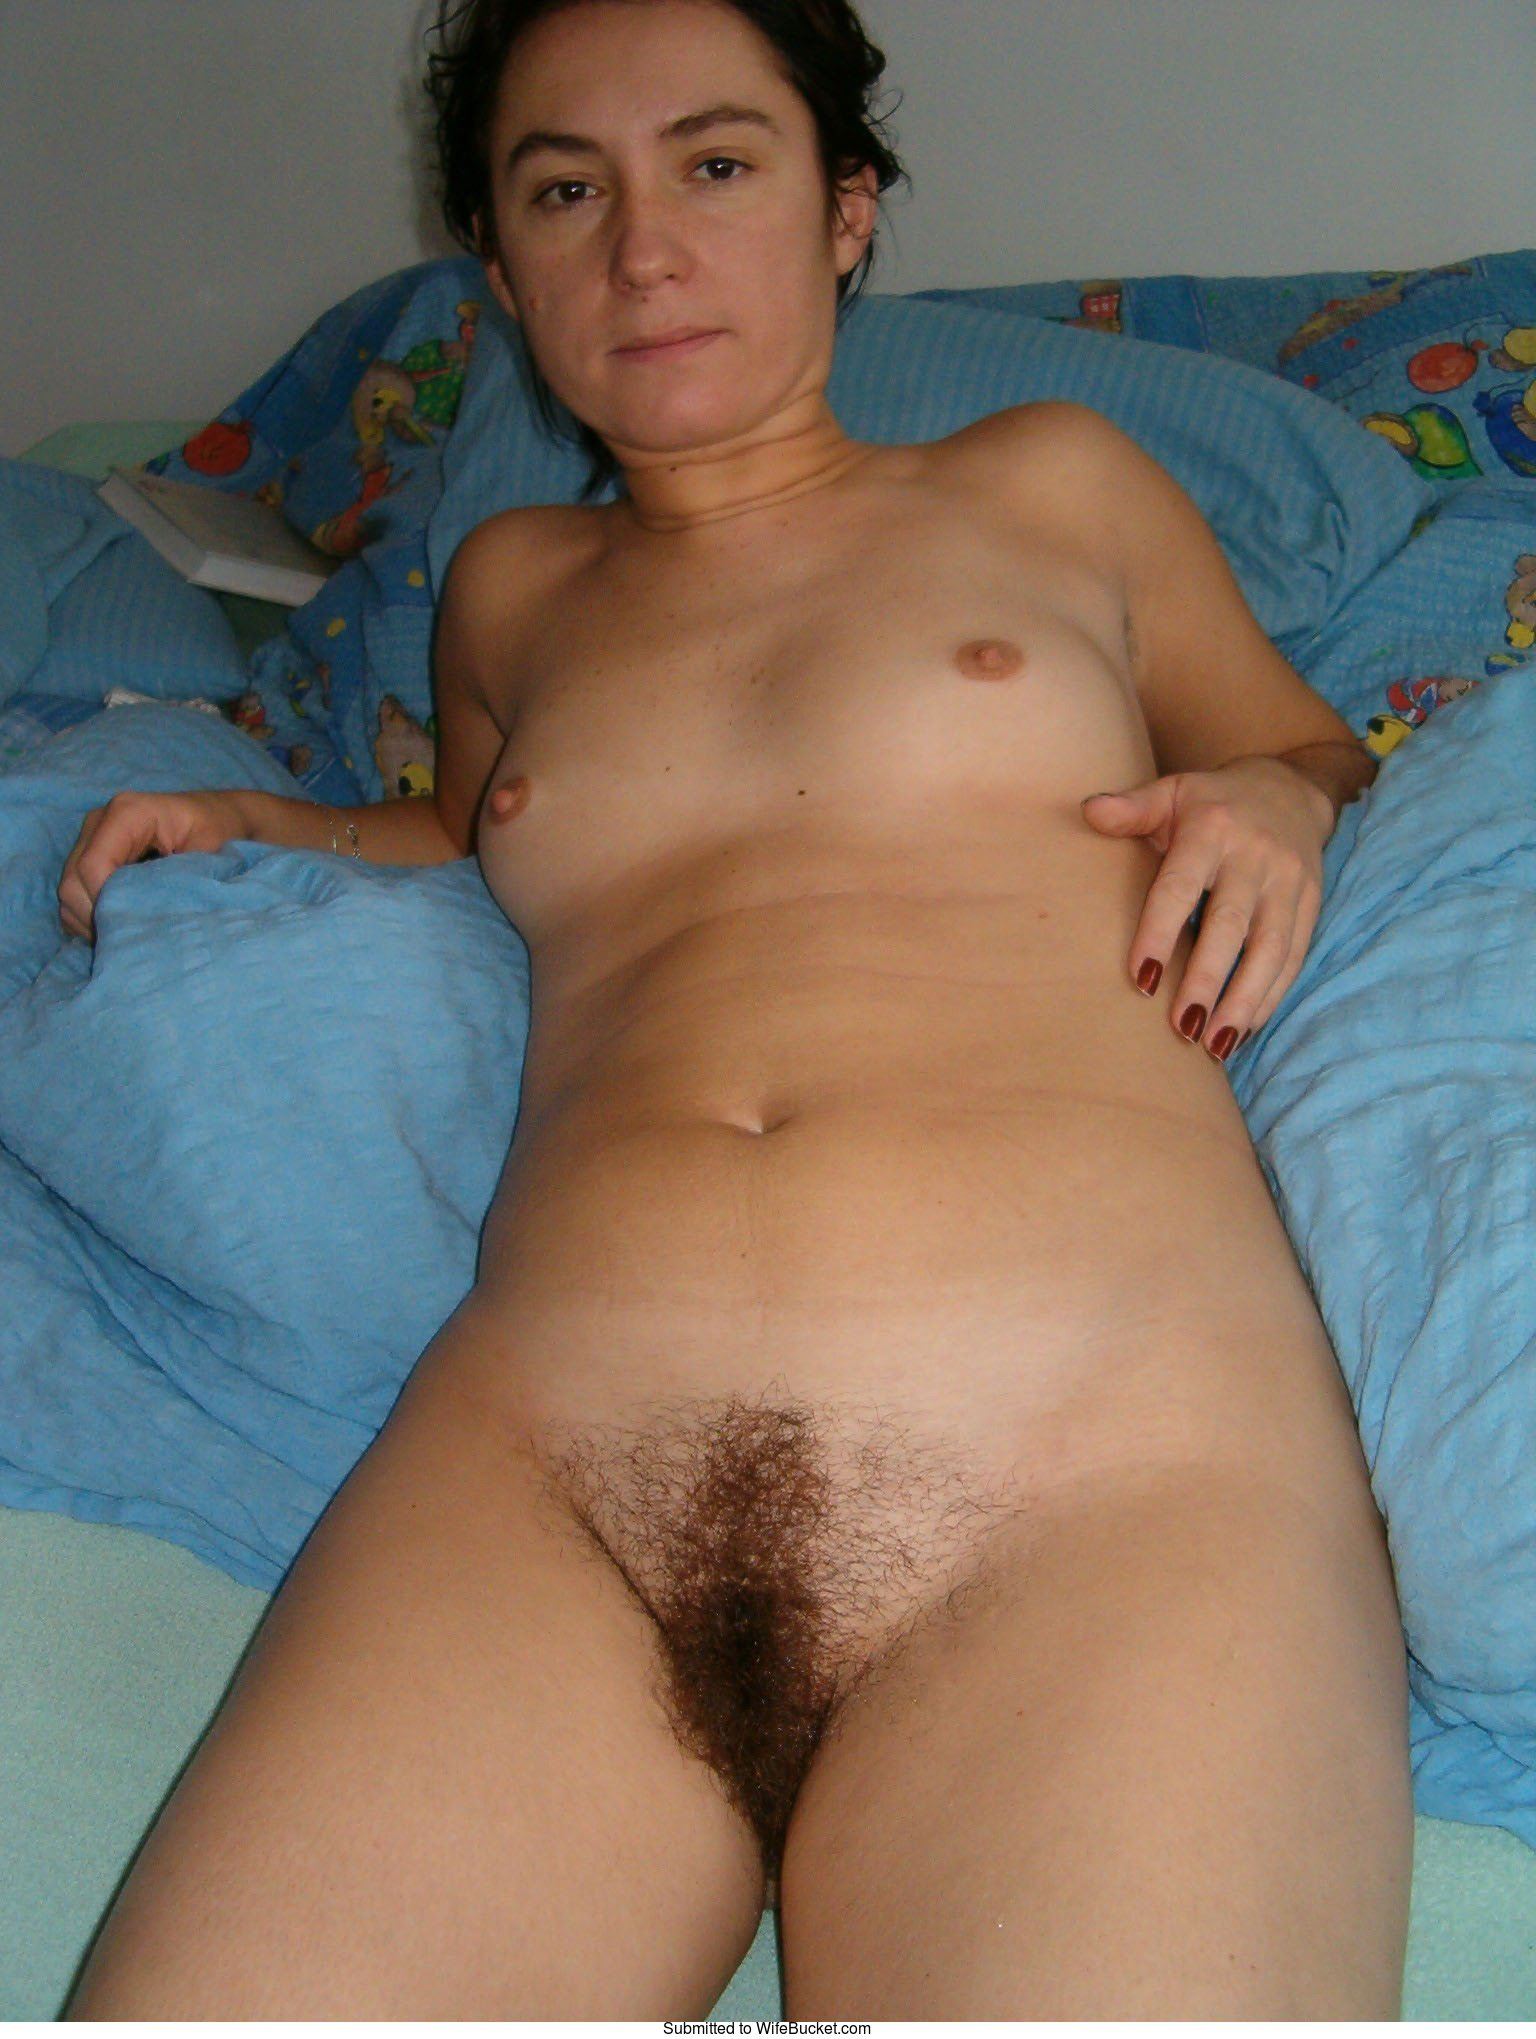 Busty mature woman and young boys